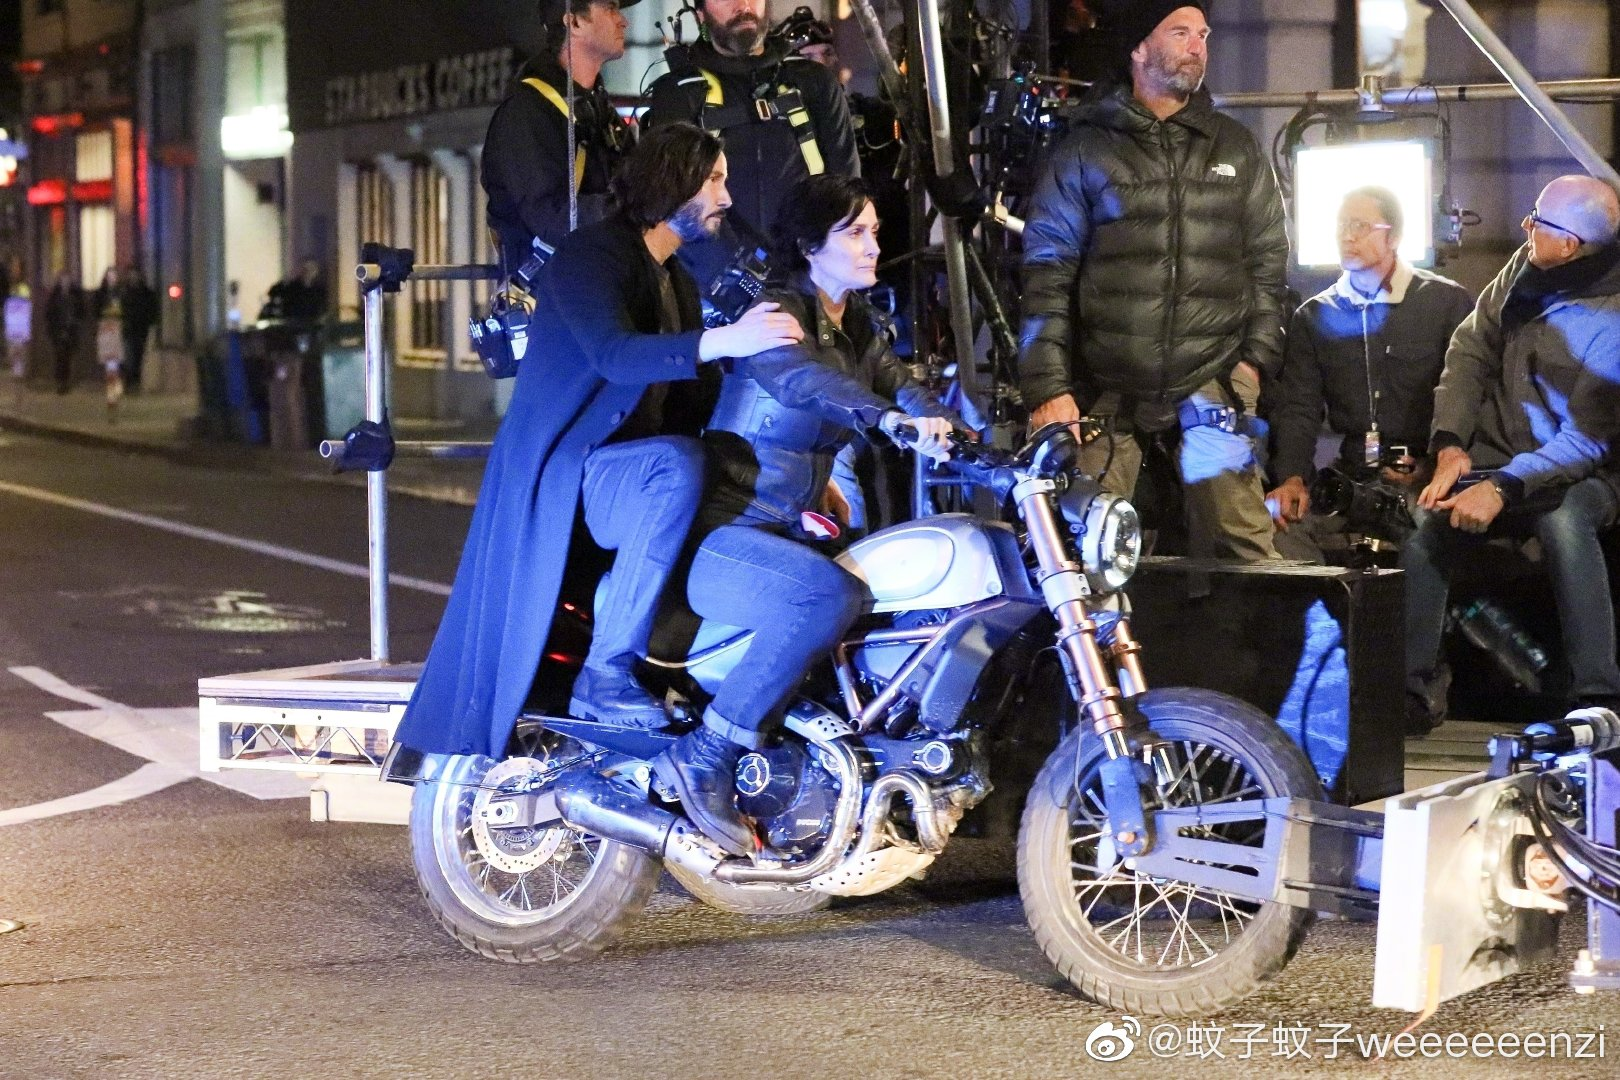 Matrix 4 Set Photo 13 Keanu Reeves Carrie Anne Moss